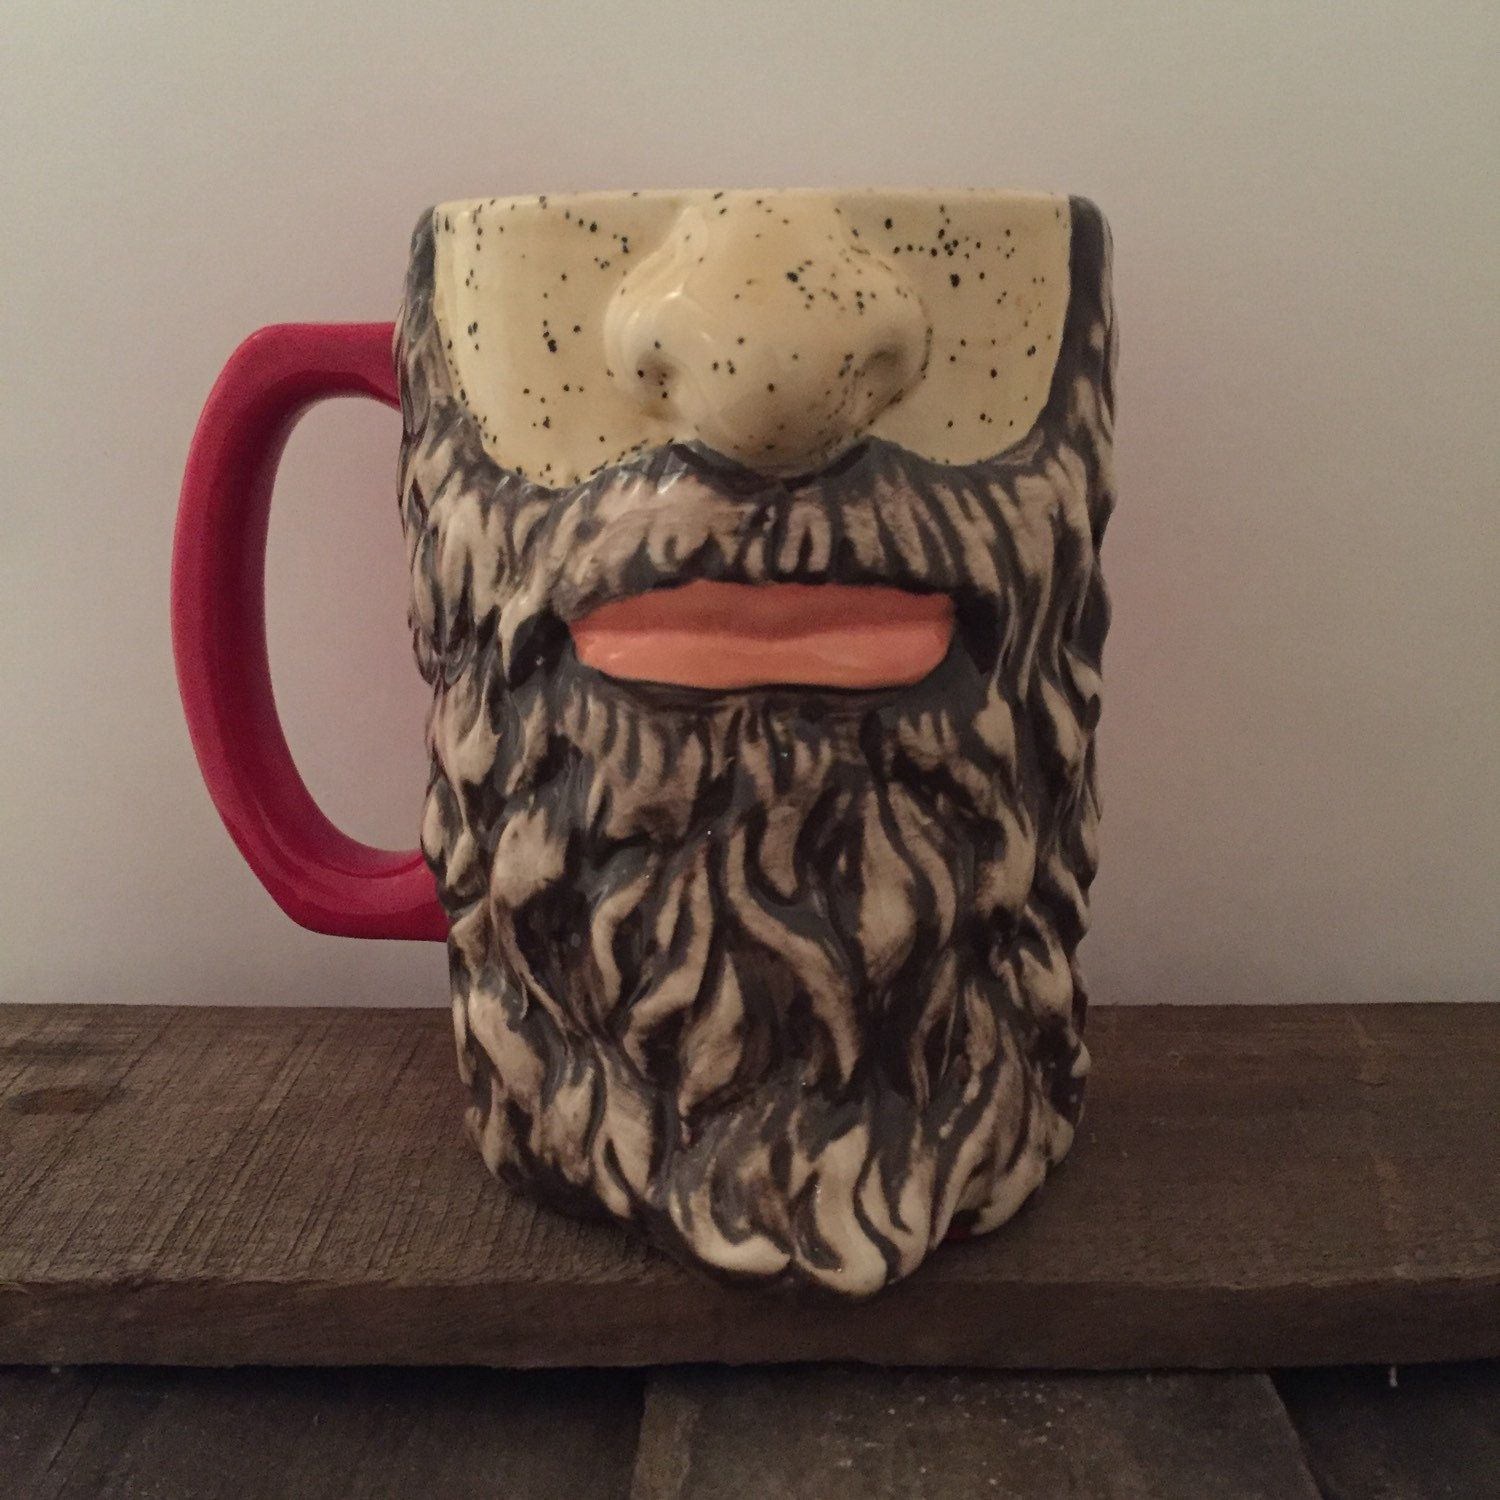 New item in the shop!! Large Mug Beard Face Beer Stein